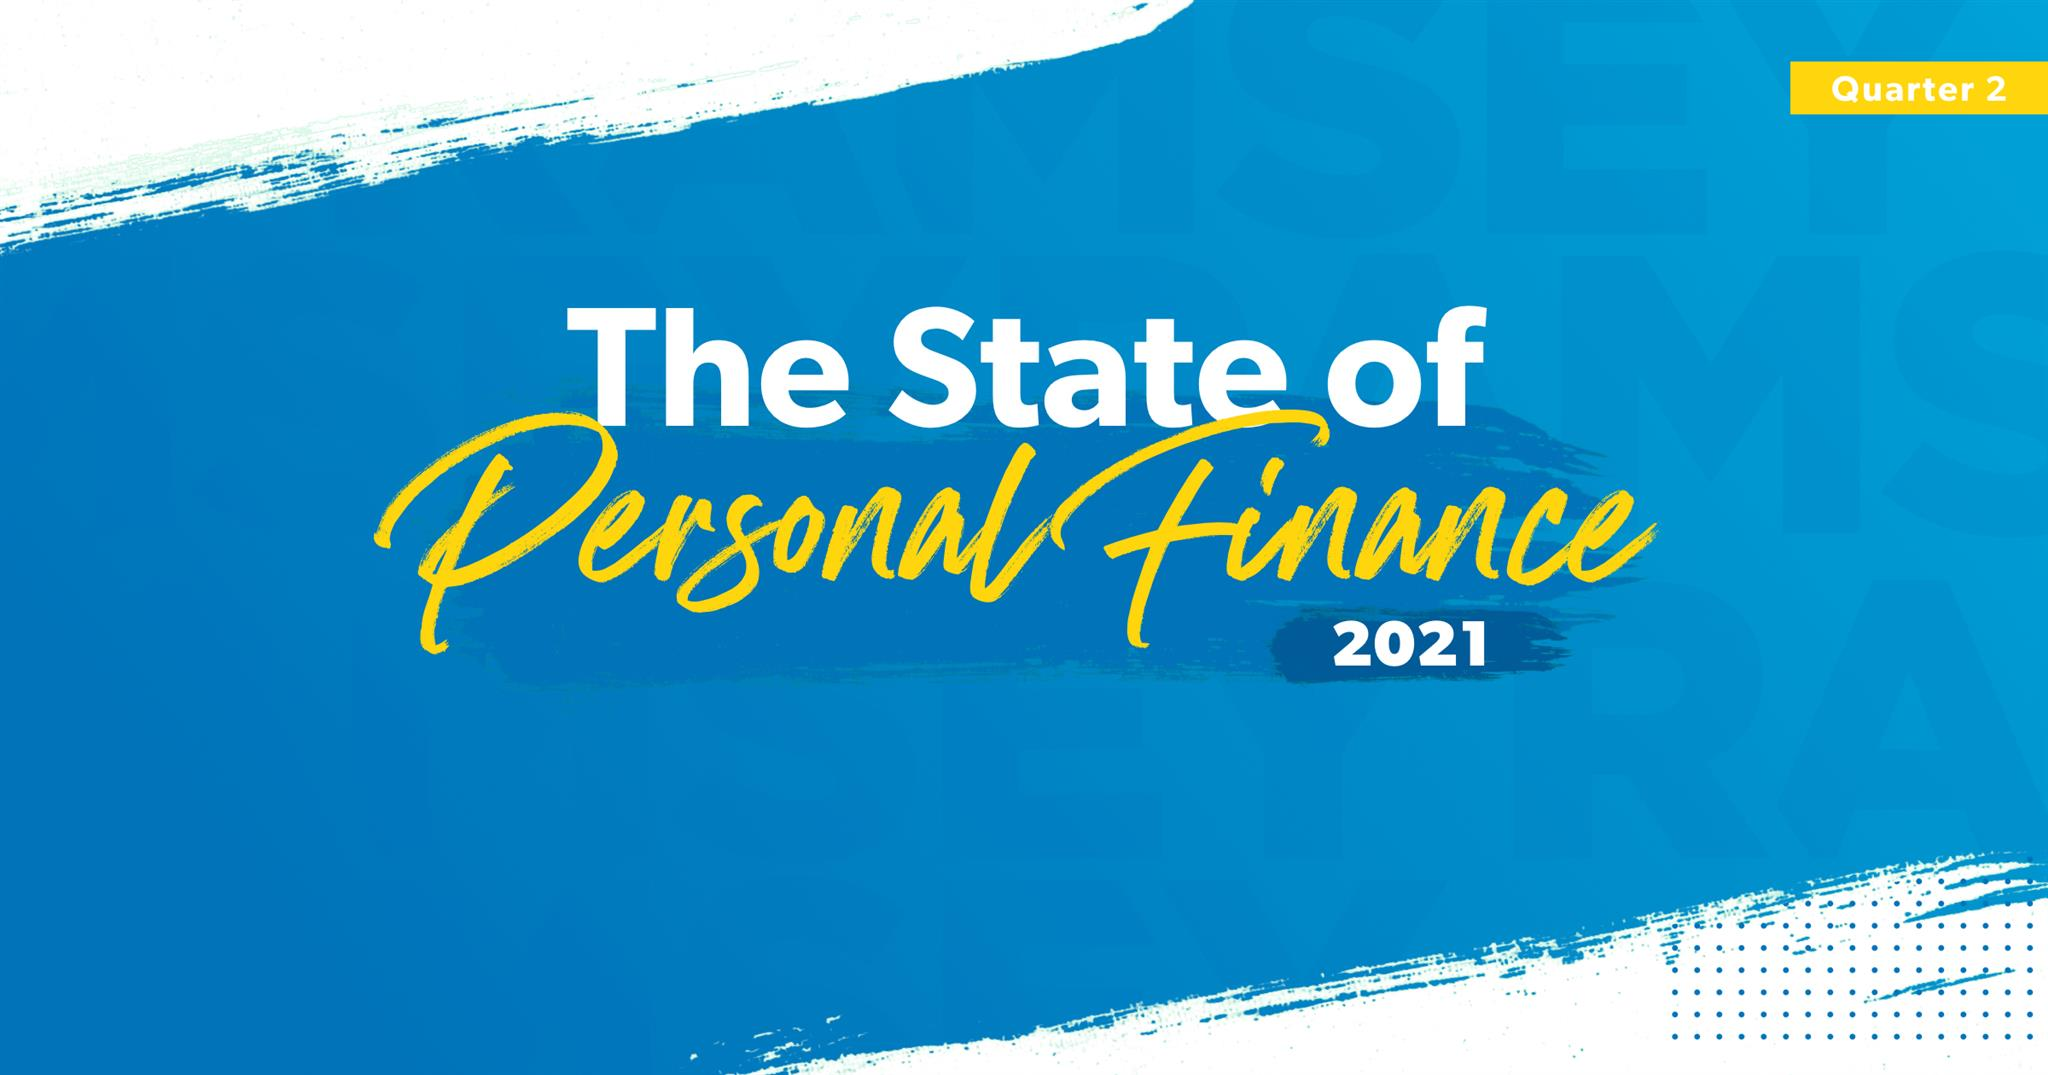 The State of Personal Finance 2021 Q2